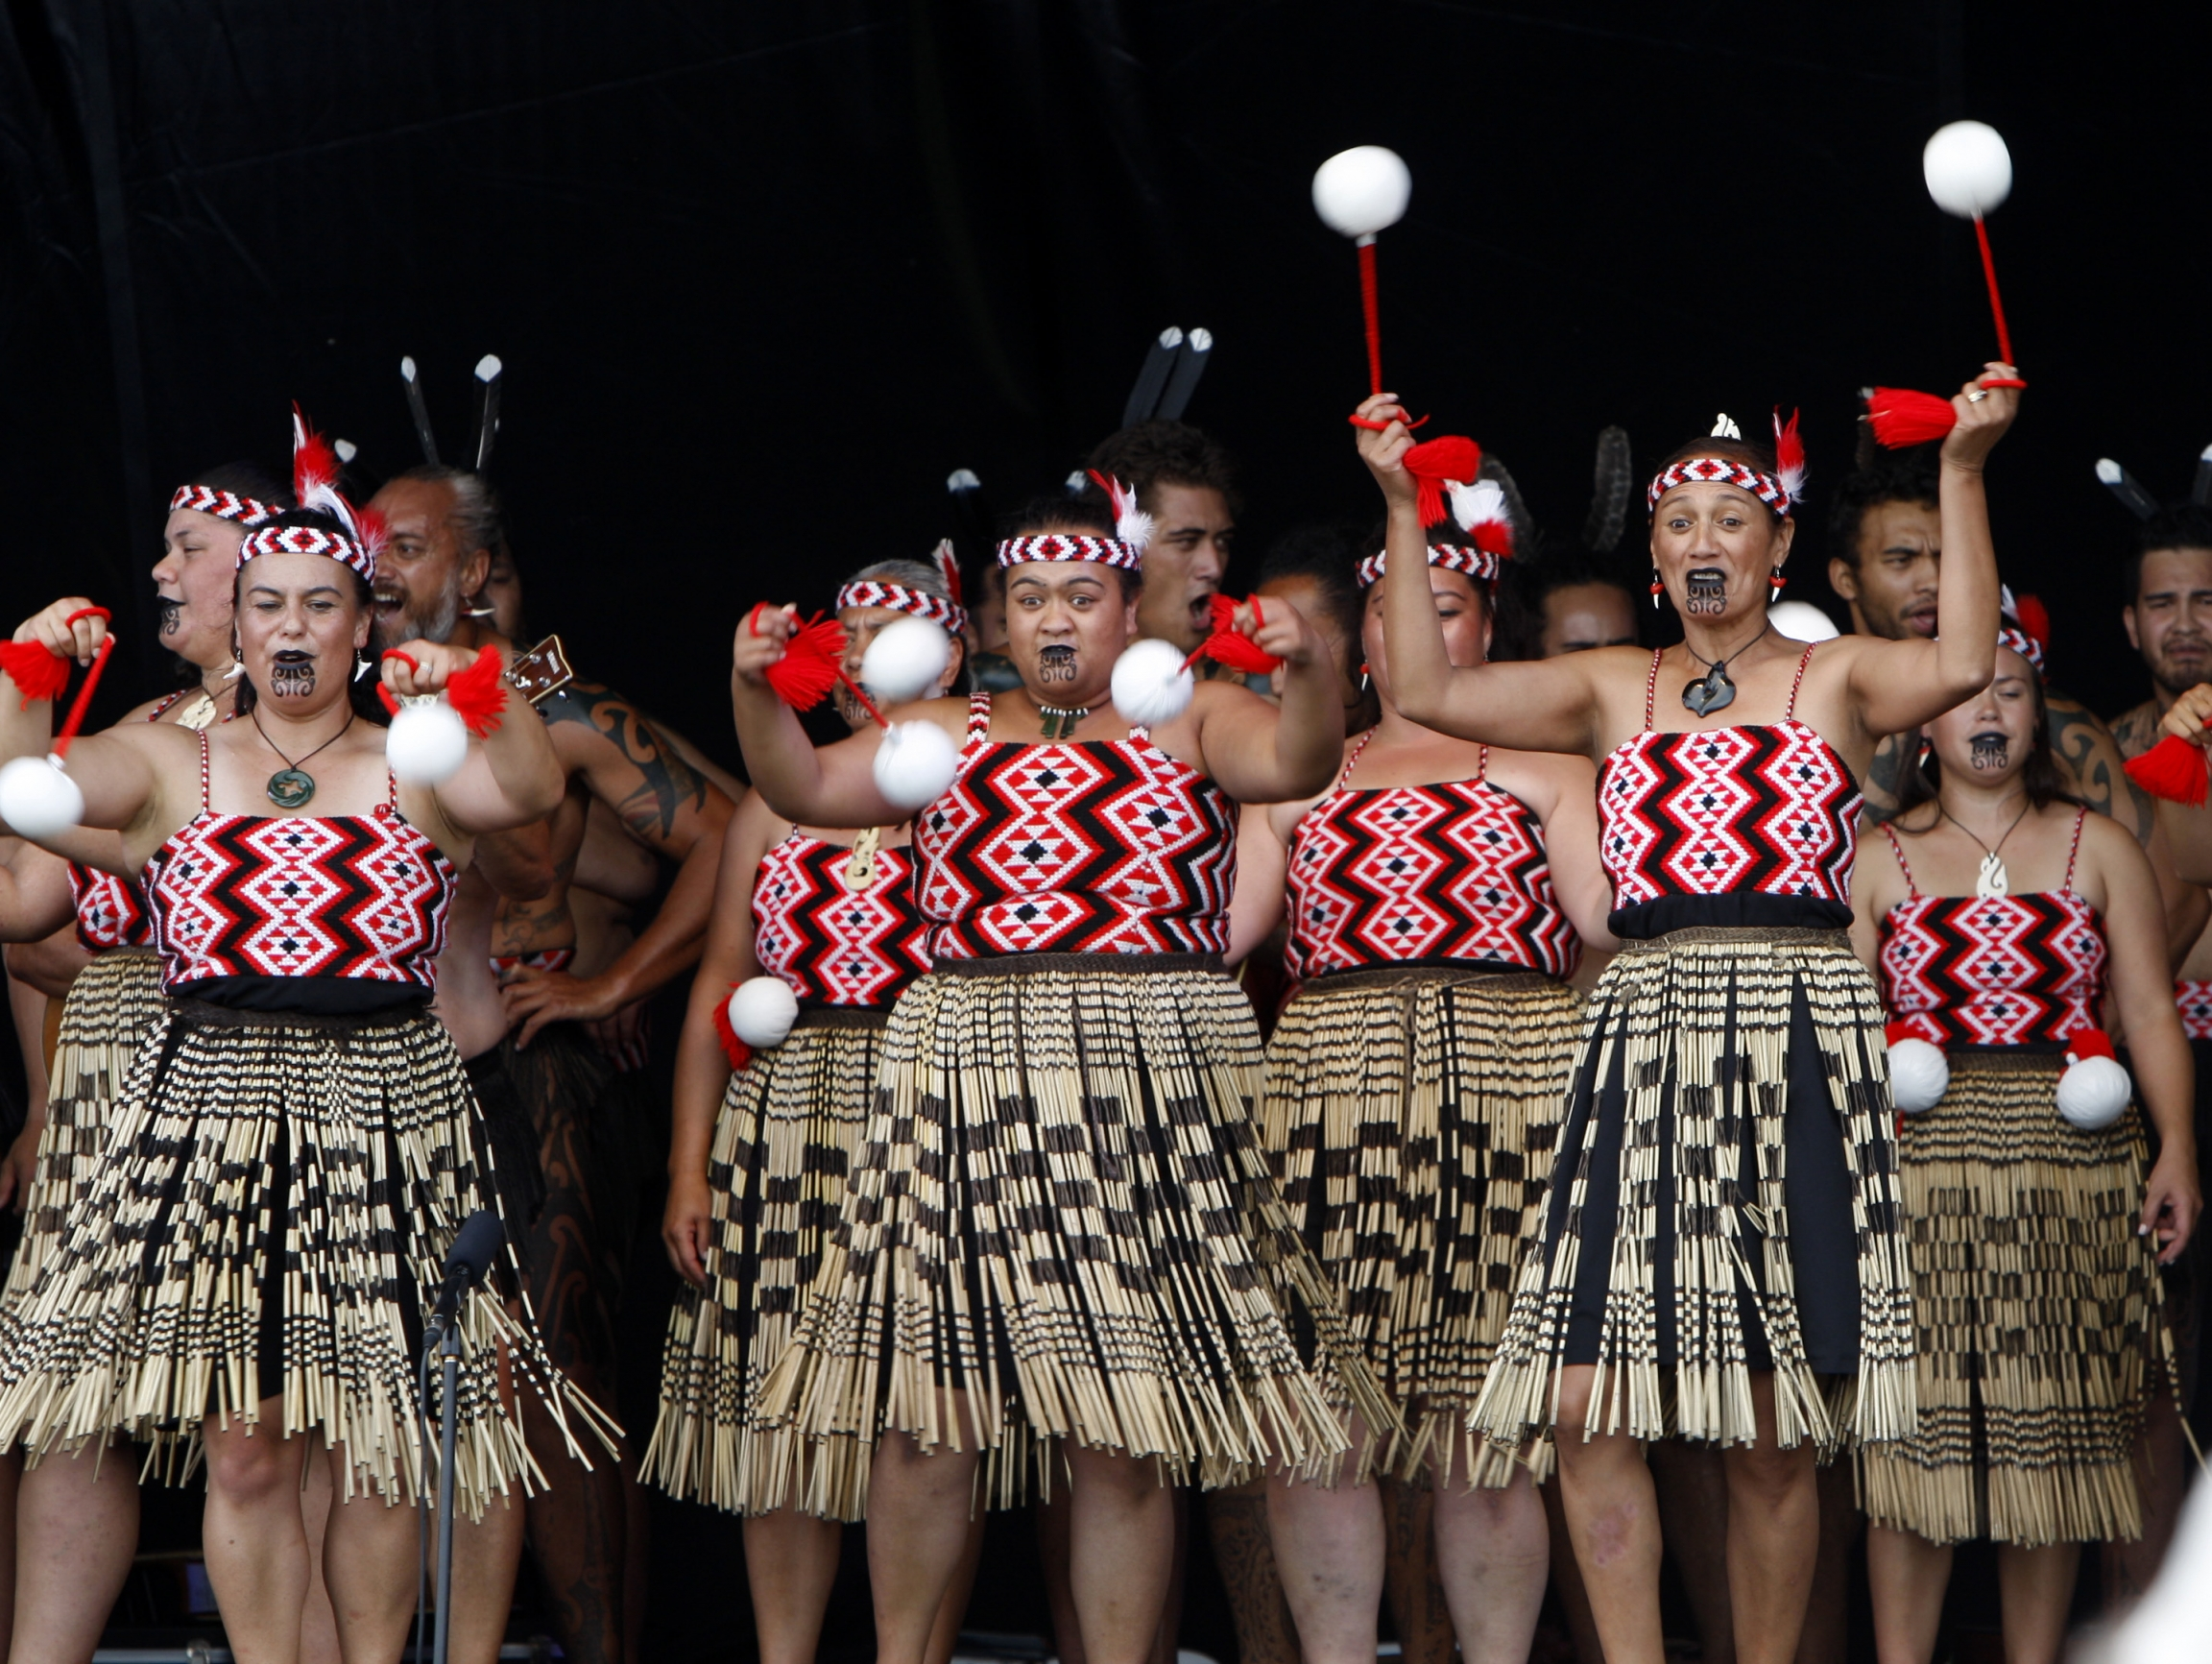 """In this Feb. 6, 2015 photo, dancers twirl white """"poi"""" balls as part of an indigenous Maori performance, in Waitangi, New Zealand, to mark the 175th anniversary of the signing of the country's founding document, the Treaty of Waitangi."""